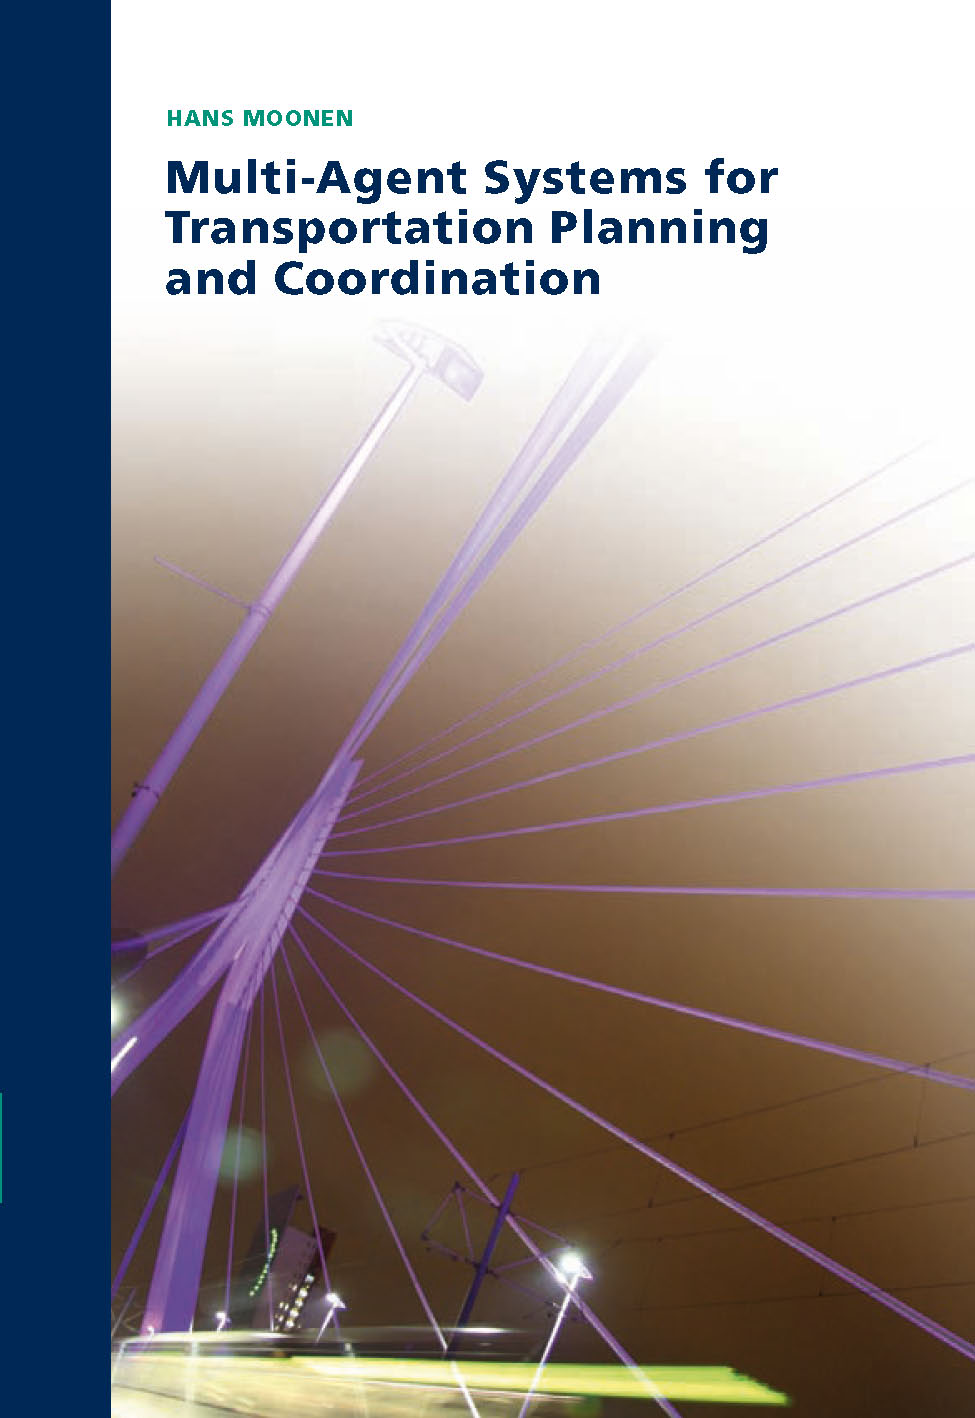 Multi-Agent Systems for Transportation Planning and Coordination